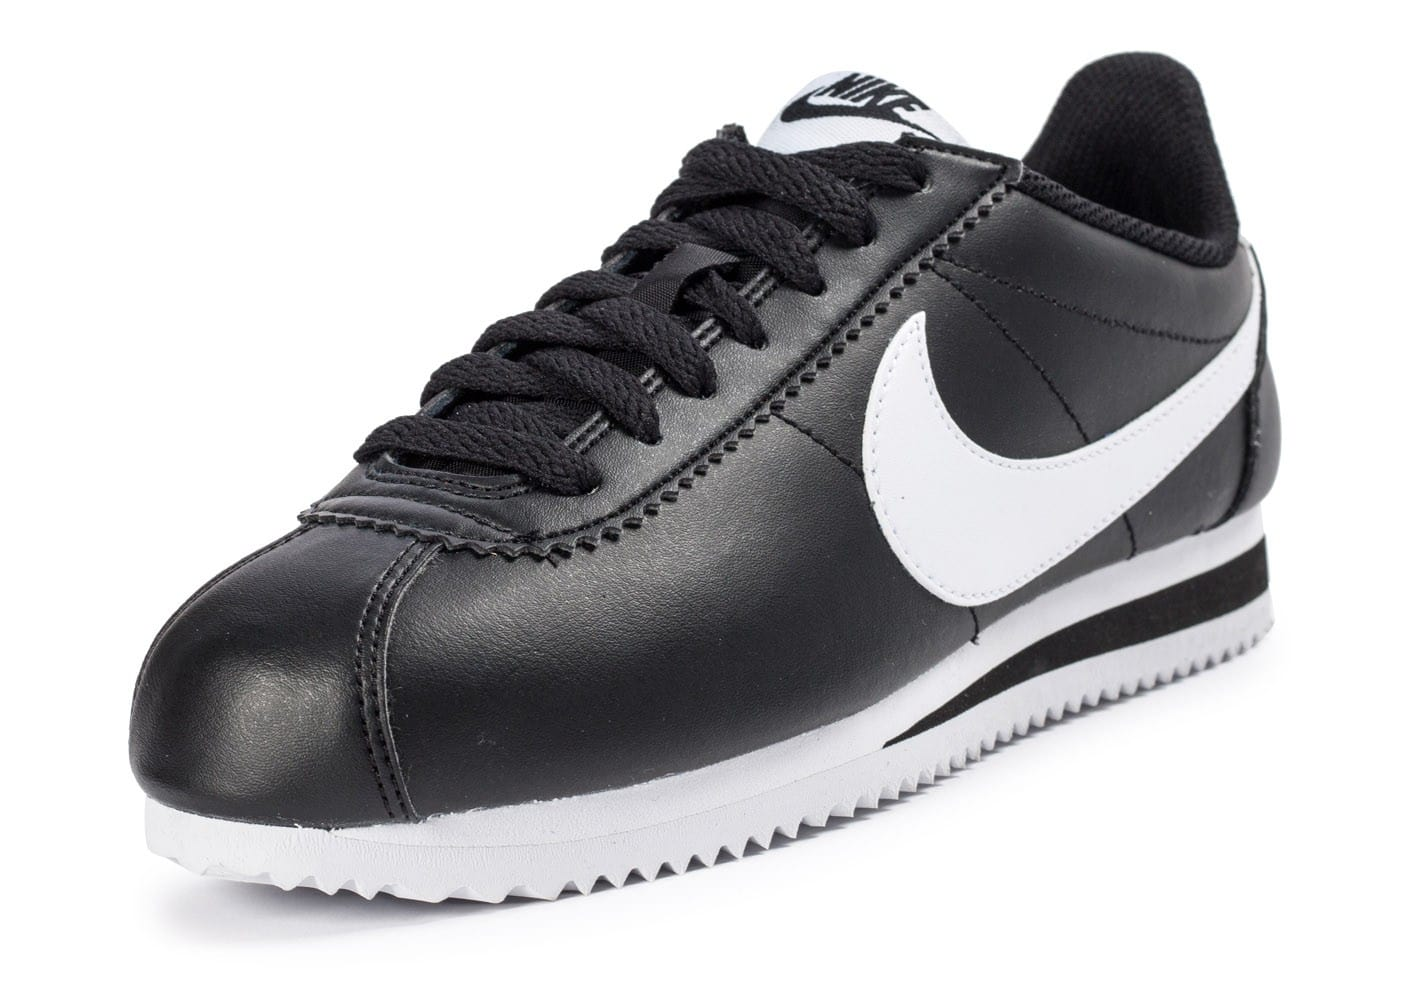 nike classic cortez leather noire et blanche chaussures. Black Bedroom Furniture Sets. Home Design Ideas